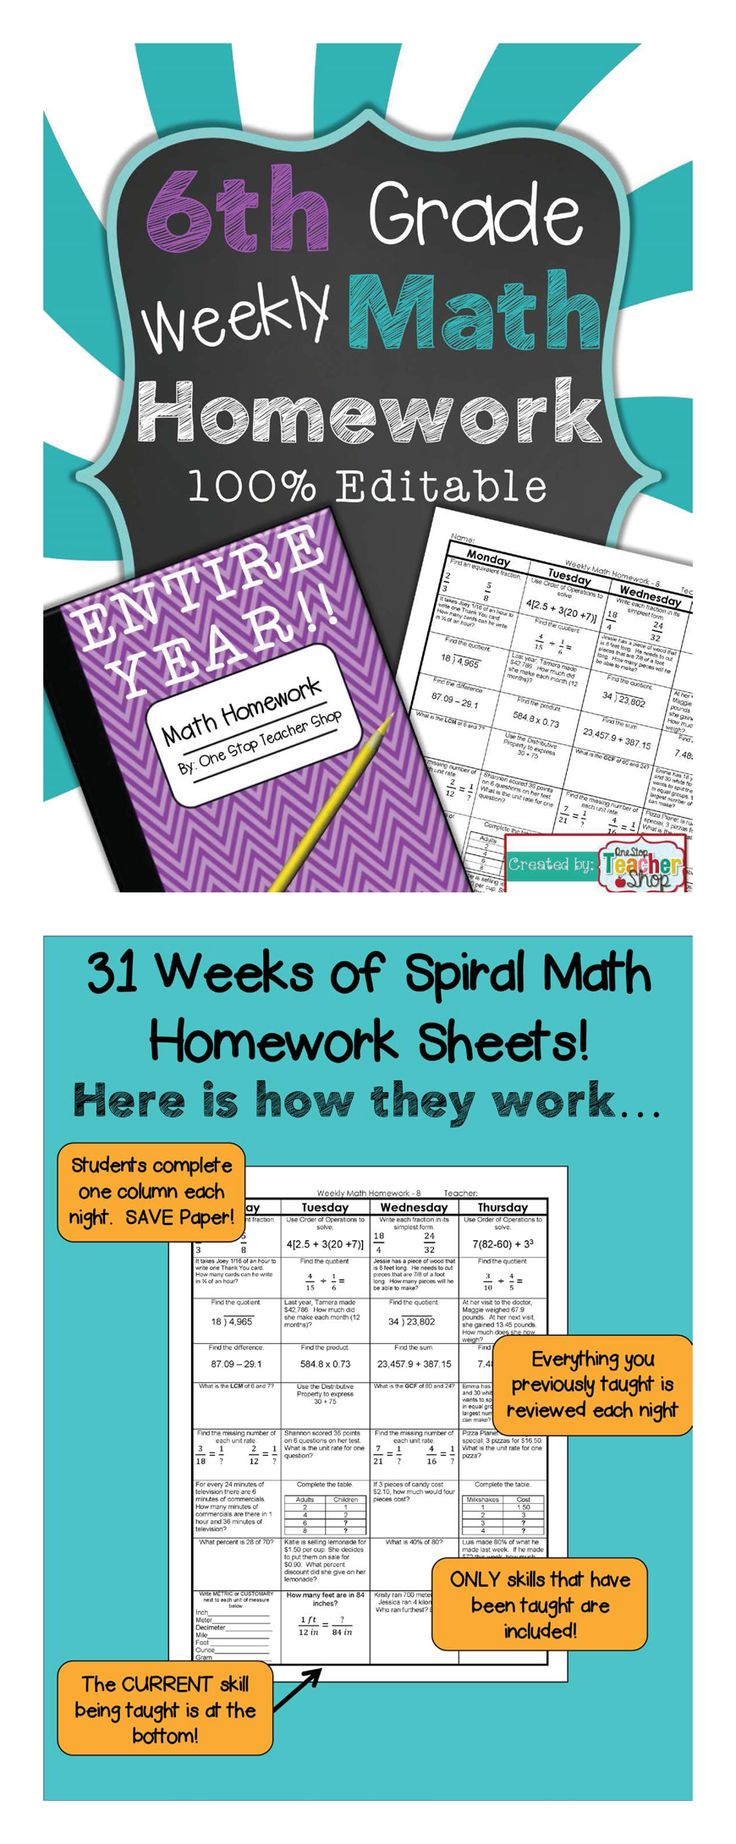 6th Grade Common Core Spiral Math Homework - ENTIRE YEAR!!! 100% Editable, w/ Answer Keys! $